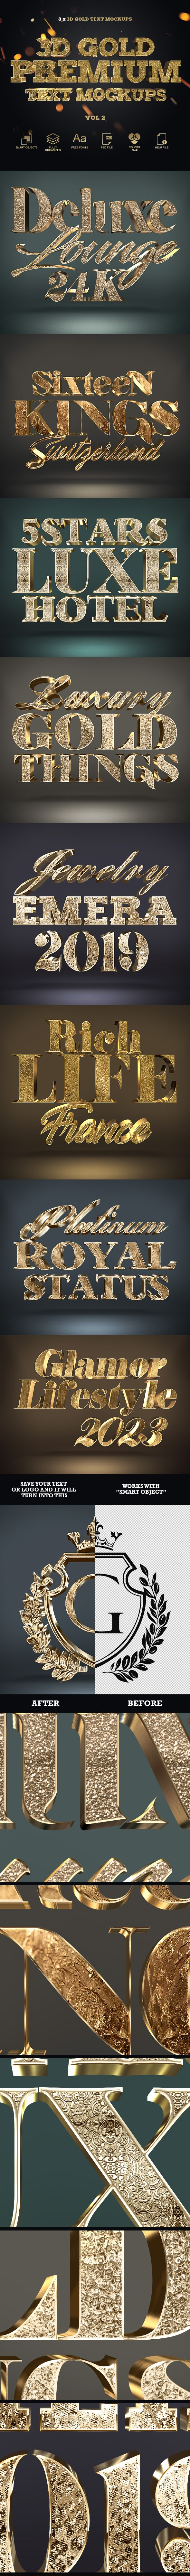 3D Gold Text Styles - Text Effects Actions